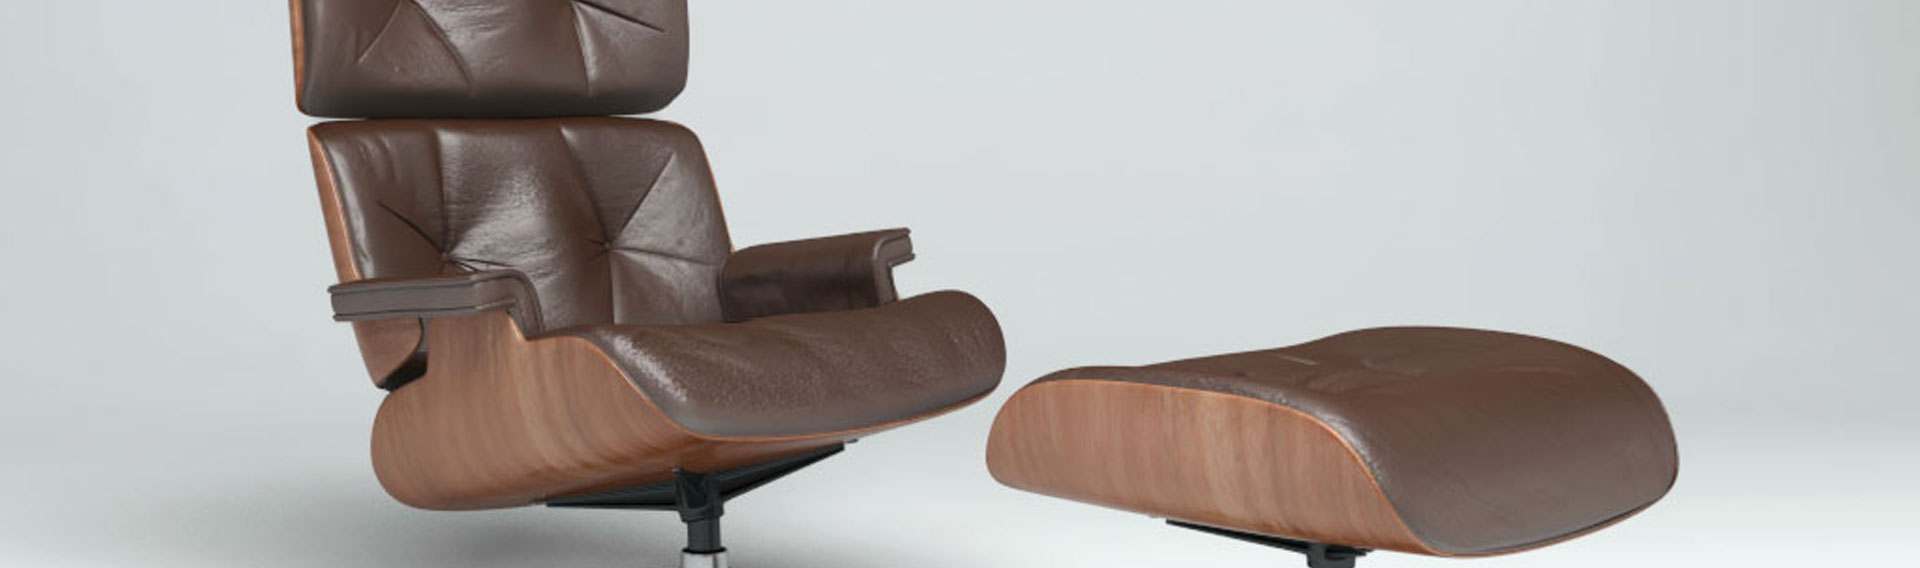 Modelling a leather chair in 3ds max